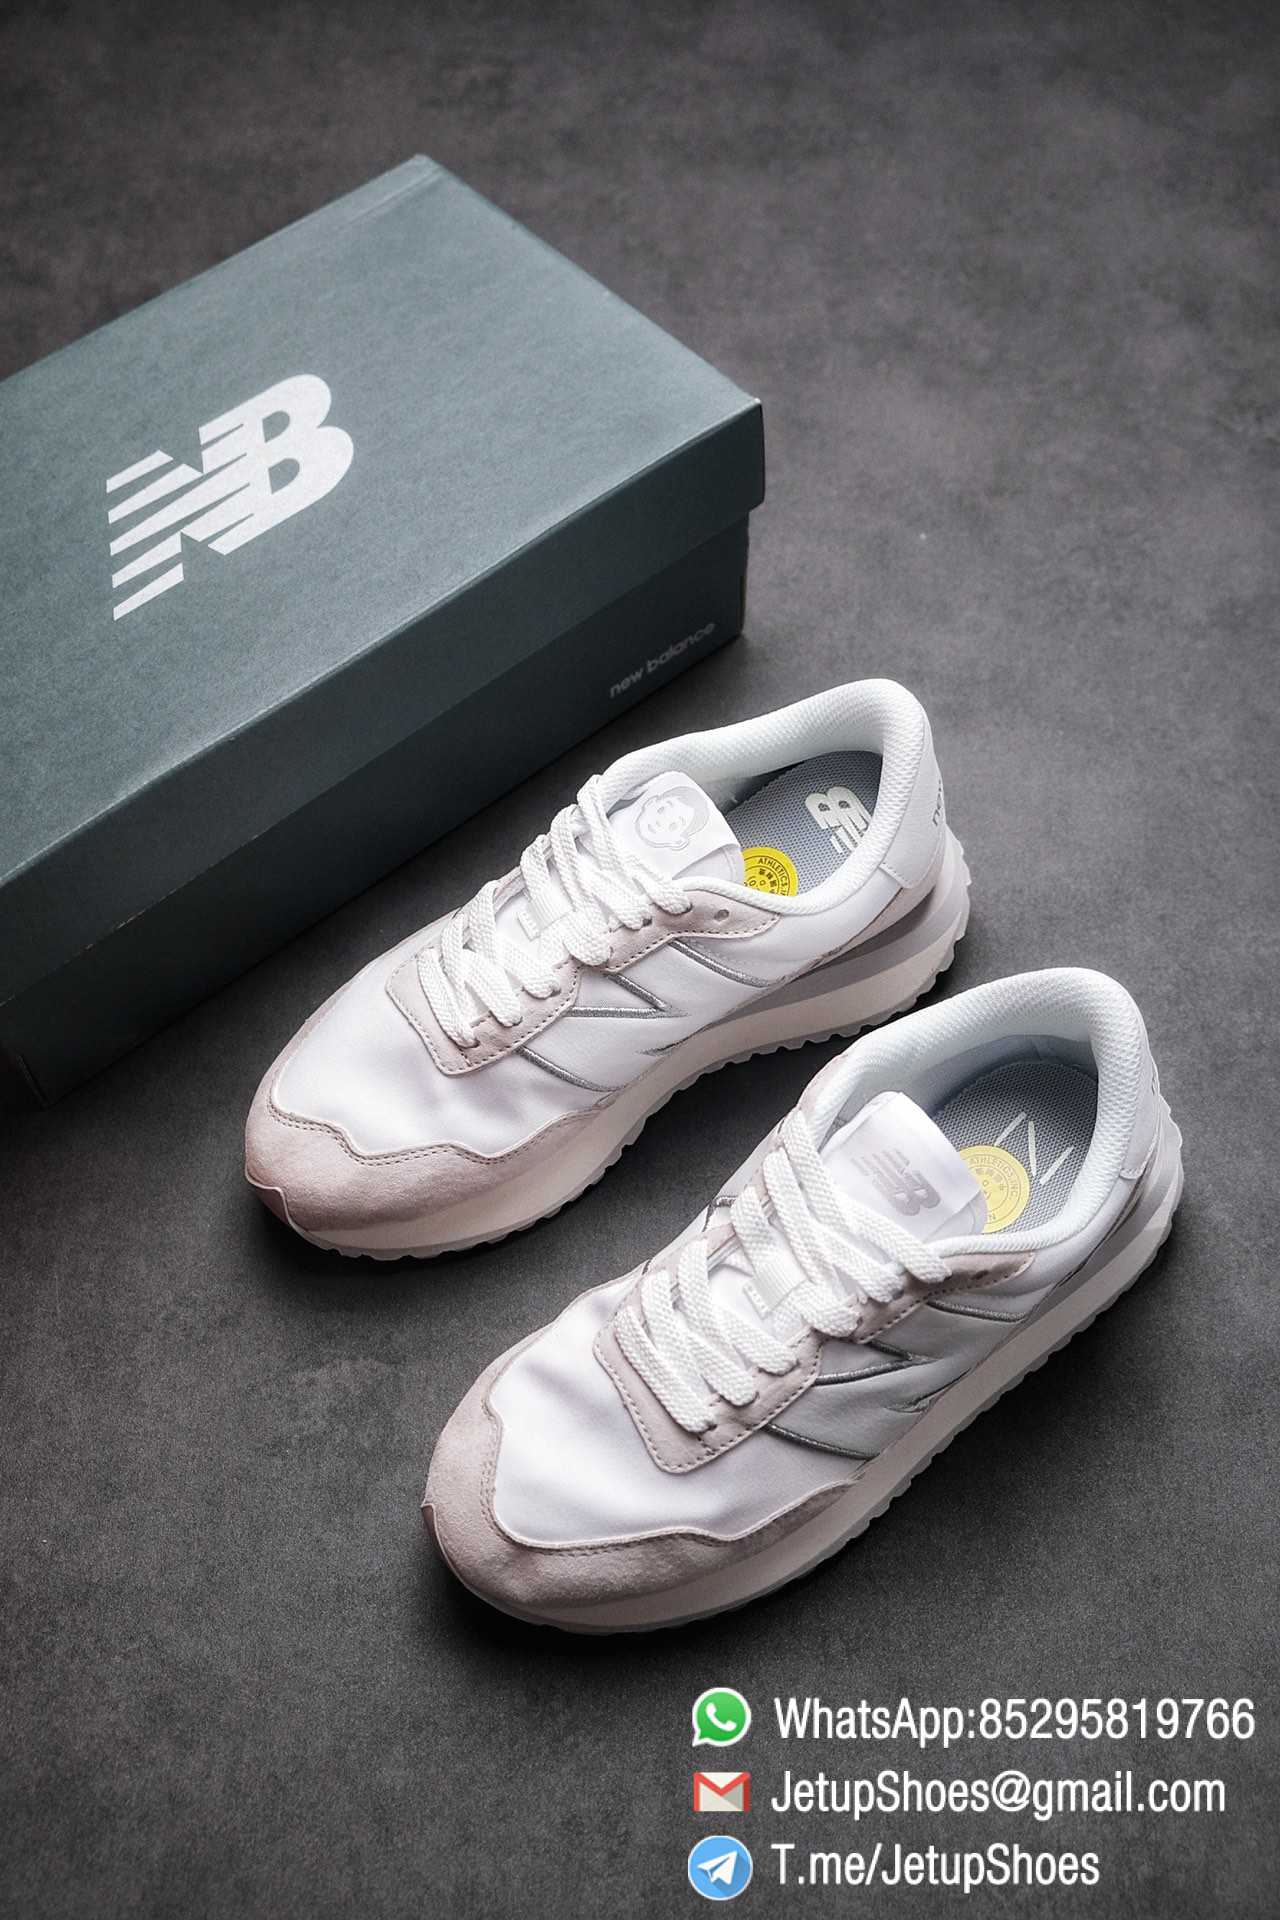 Best Replica 2021 New Balance 237 White Light Grey SKU MS237NW1 High Quality Running Sneakers 04